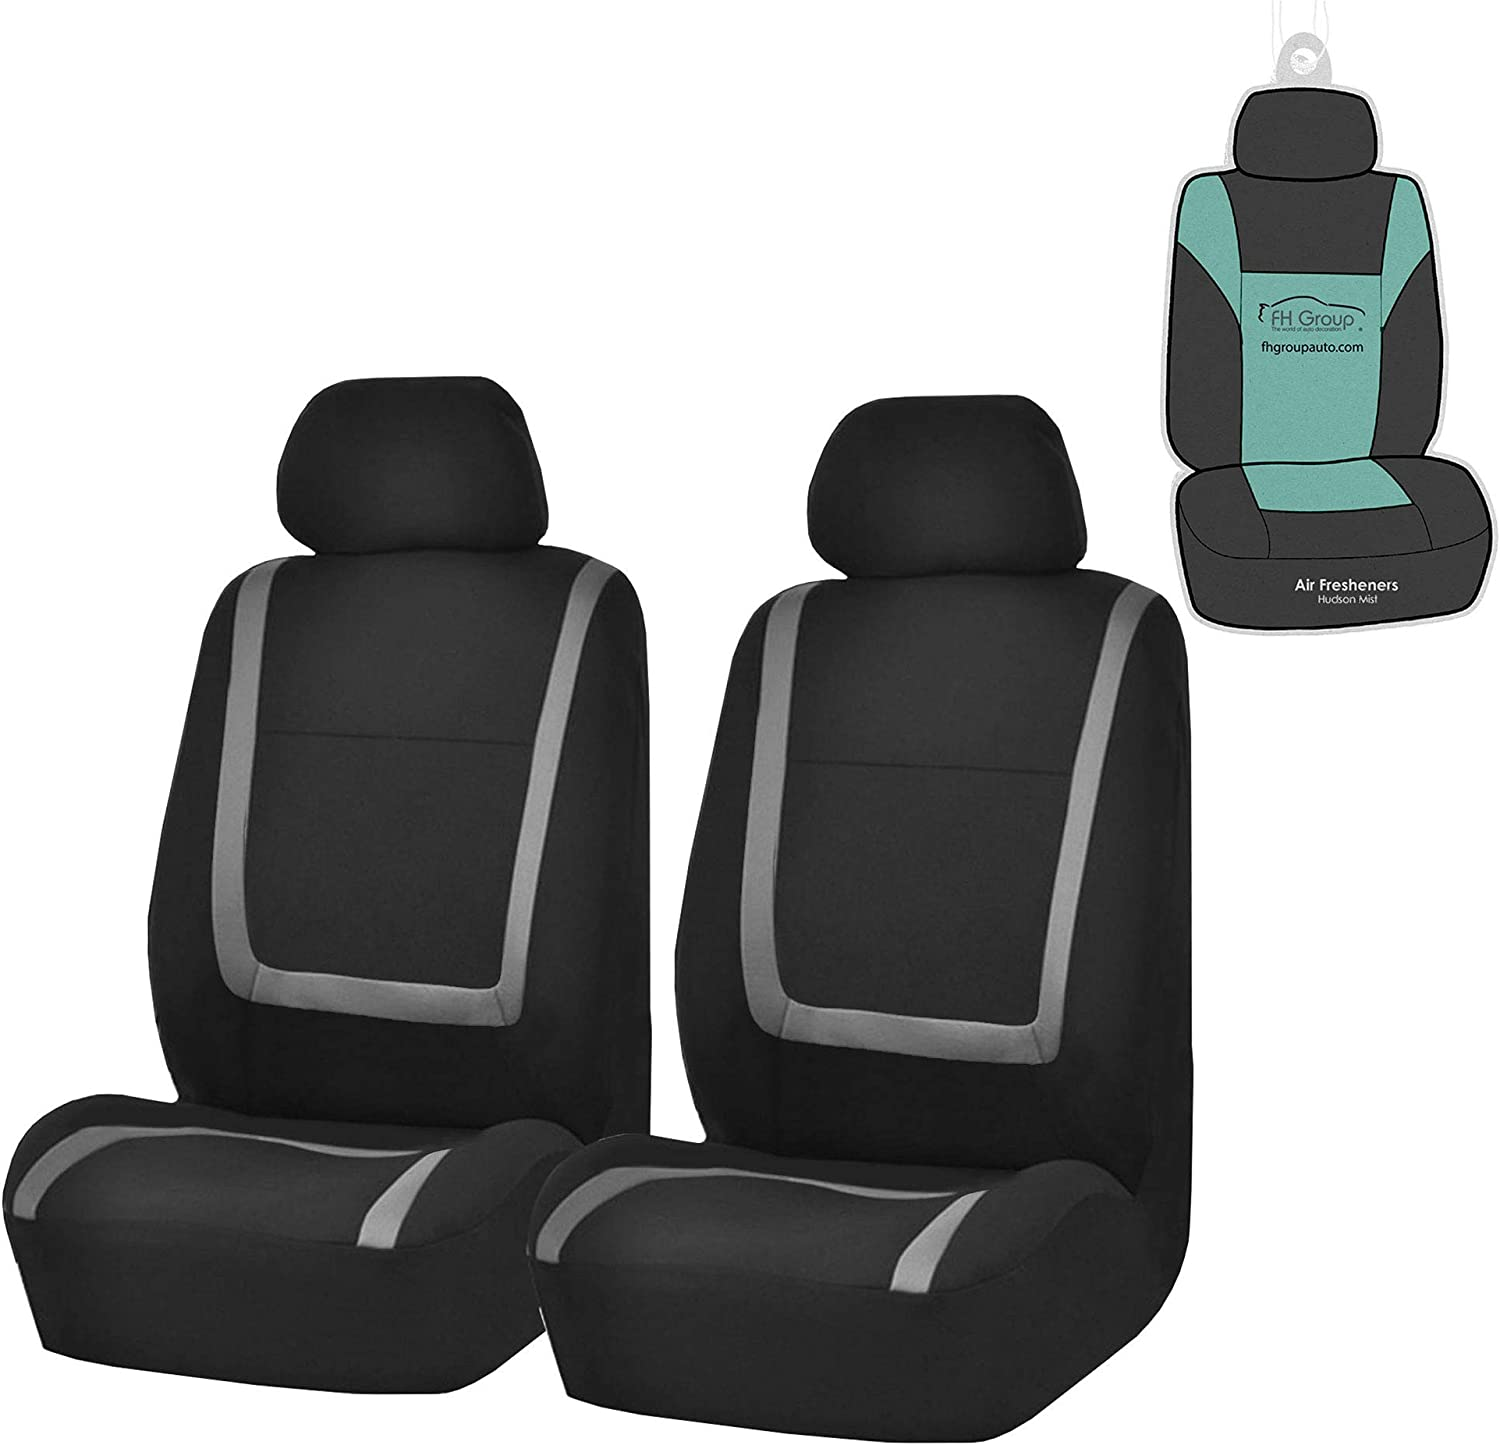 FH Group FB32102 Beauty products Unique Flat Cloth Black- Covers Gray Albuquerque Mall Seat Fit